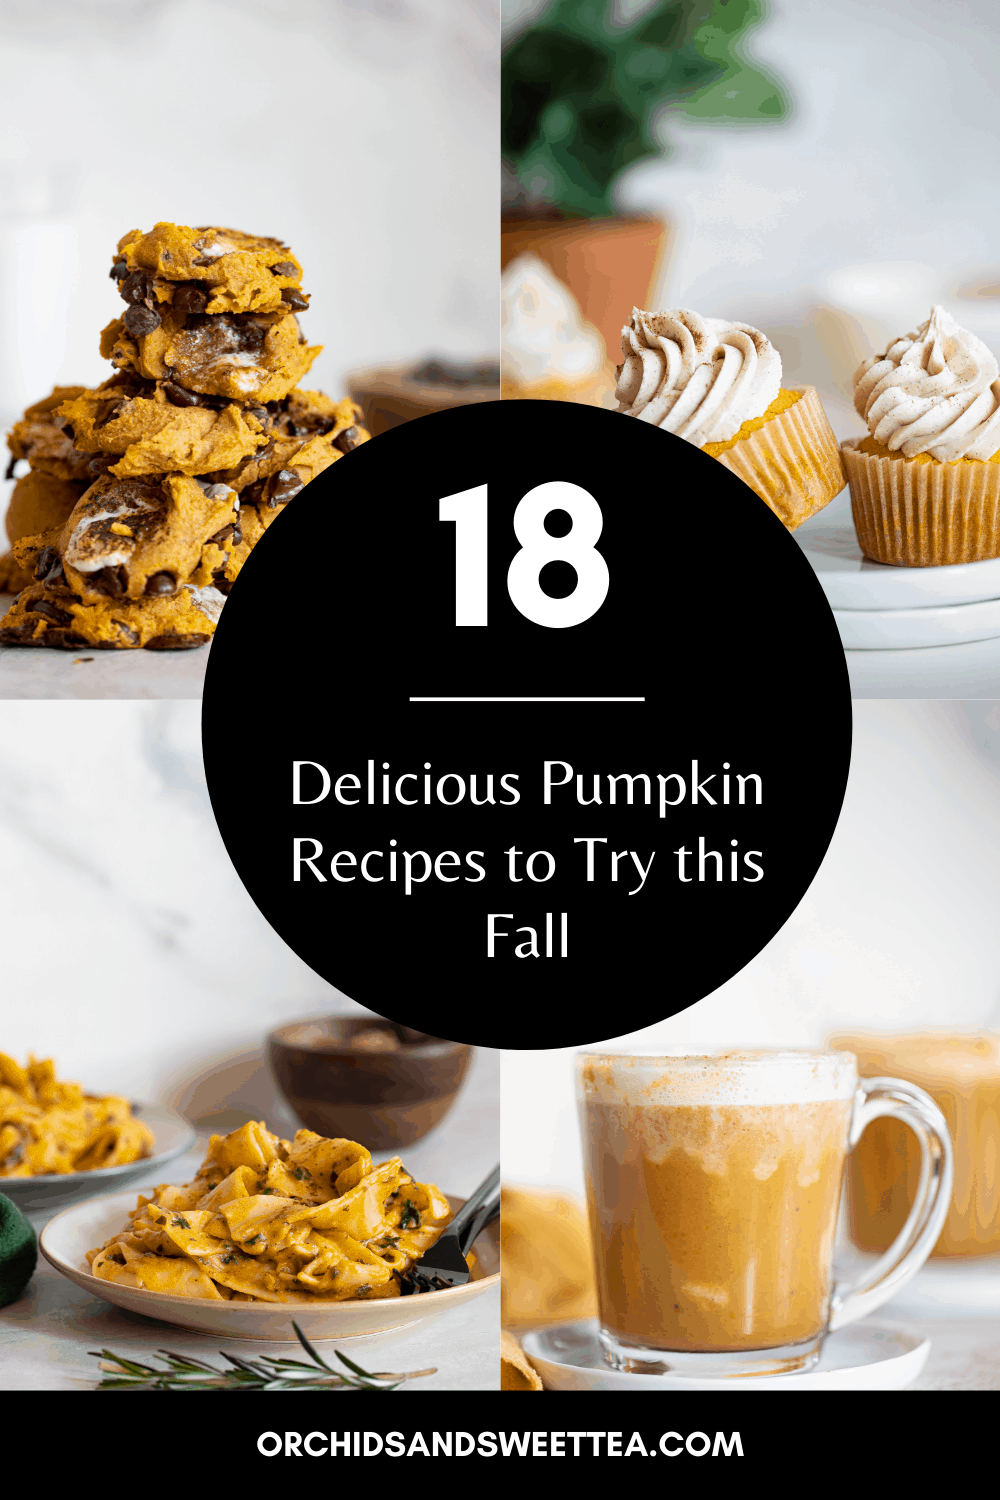 18 Delicious Pumpkin Recipes to Try this Fall